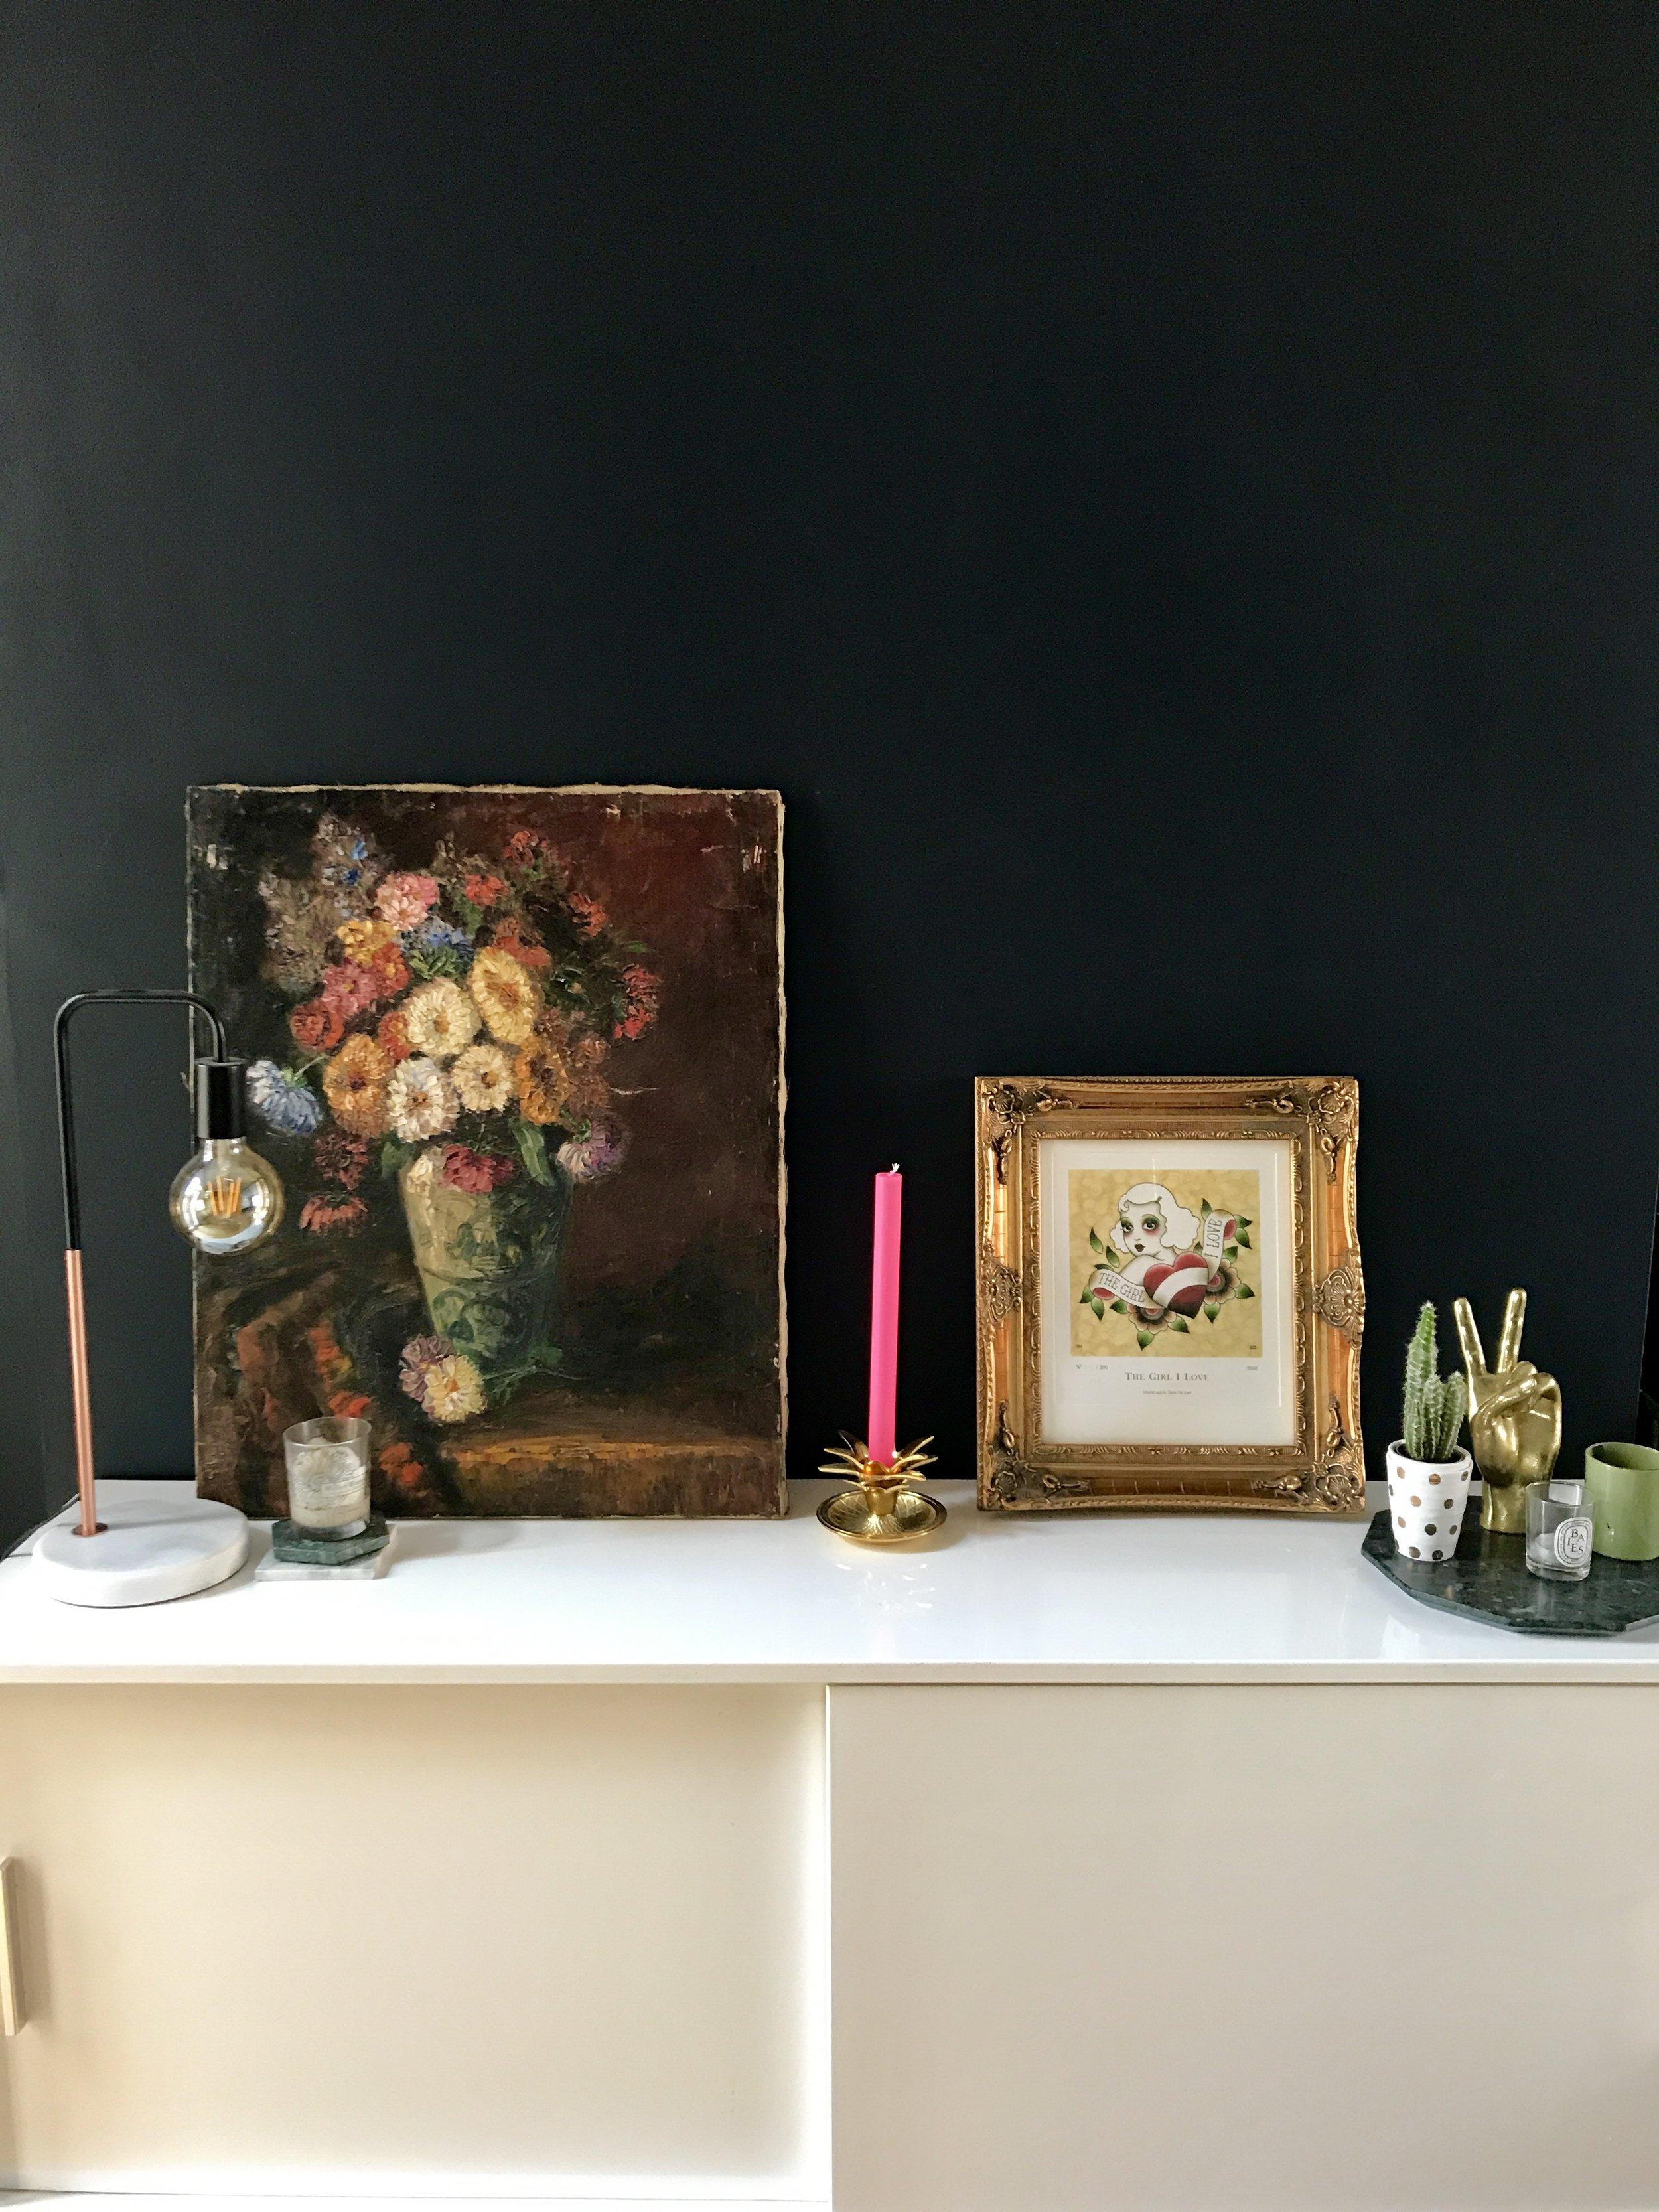 The oil painting was a Kempton Market find and the tattoo flash is by Angelique Houtkamp from Nelly Duff, table lamp from Aldi, candlestick from Maisons Du Monde and peace sign hand, Rockett St George.